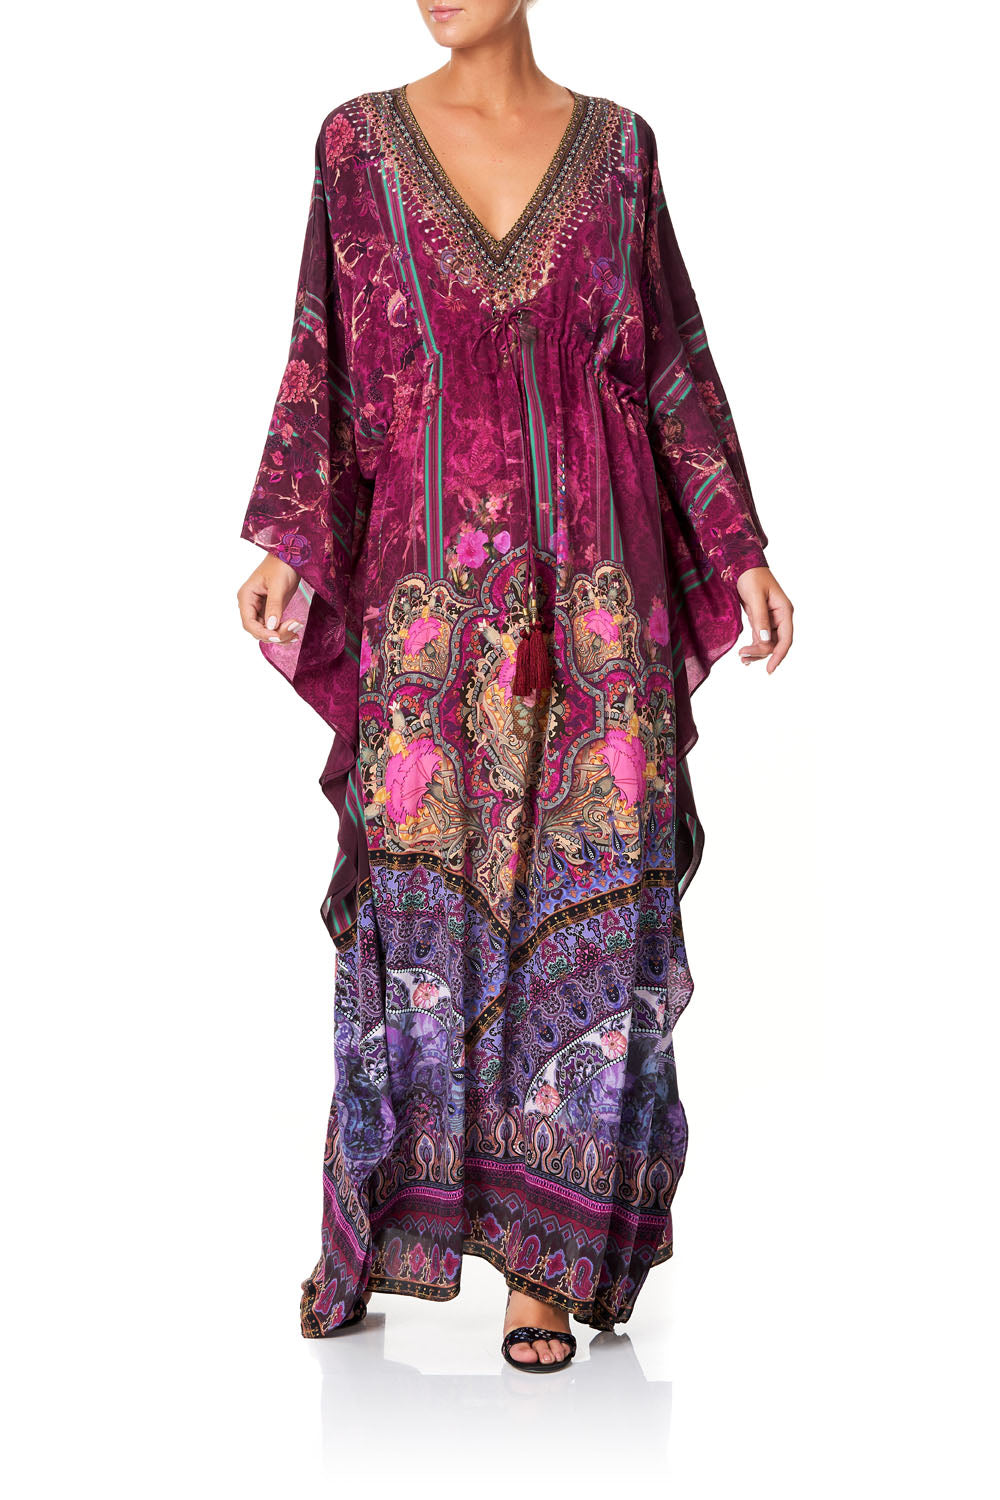 V-NECK KAFTAN WITH TIE WAIST DAUGHTER'S DESTINY